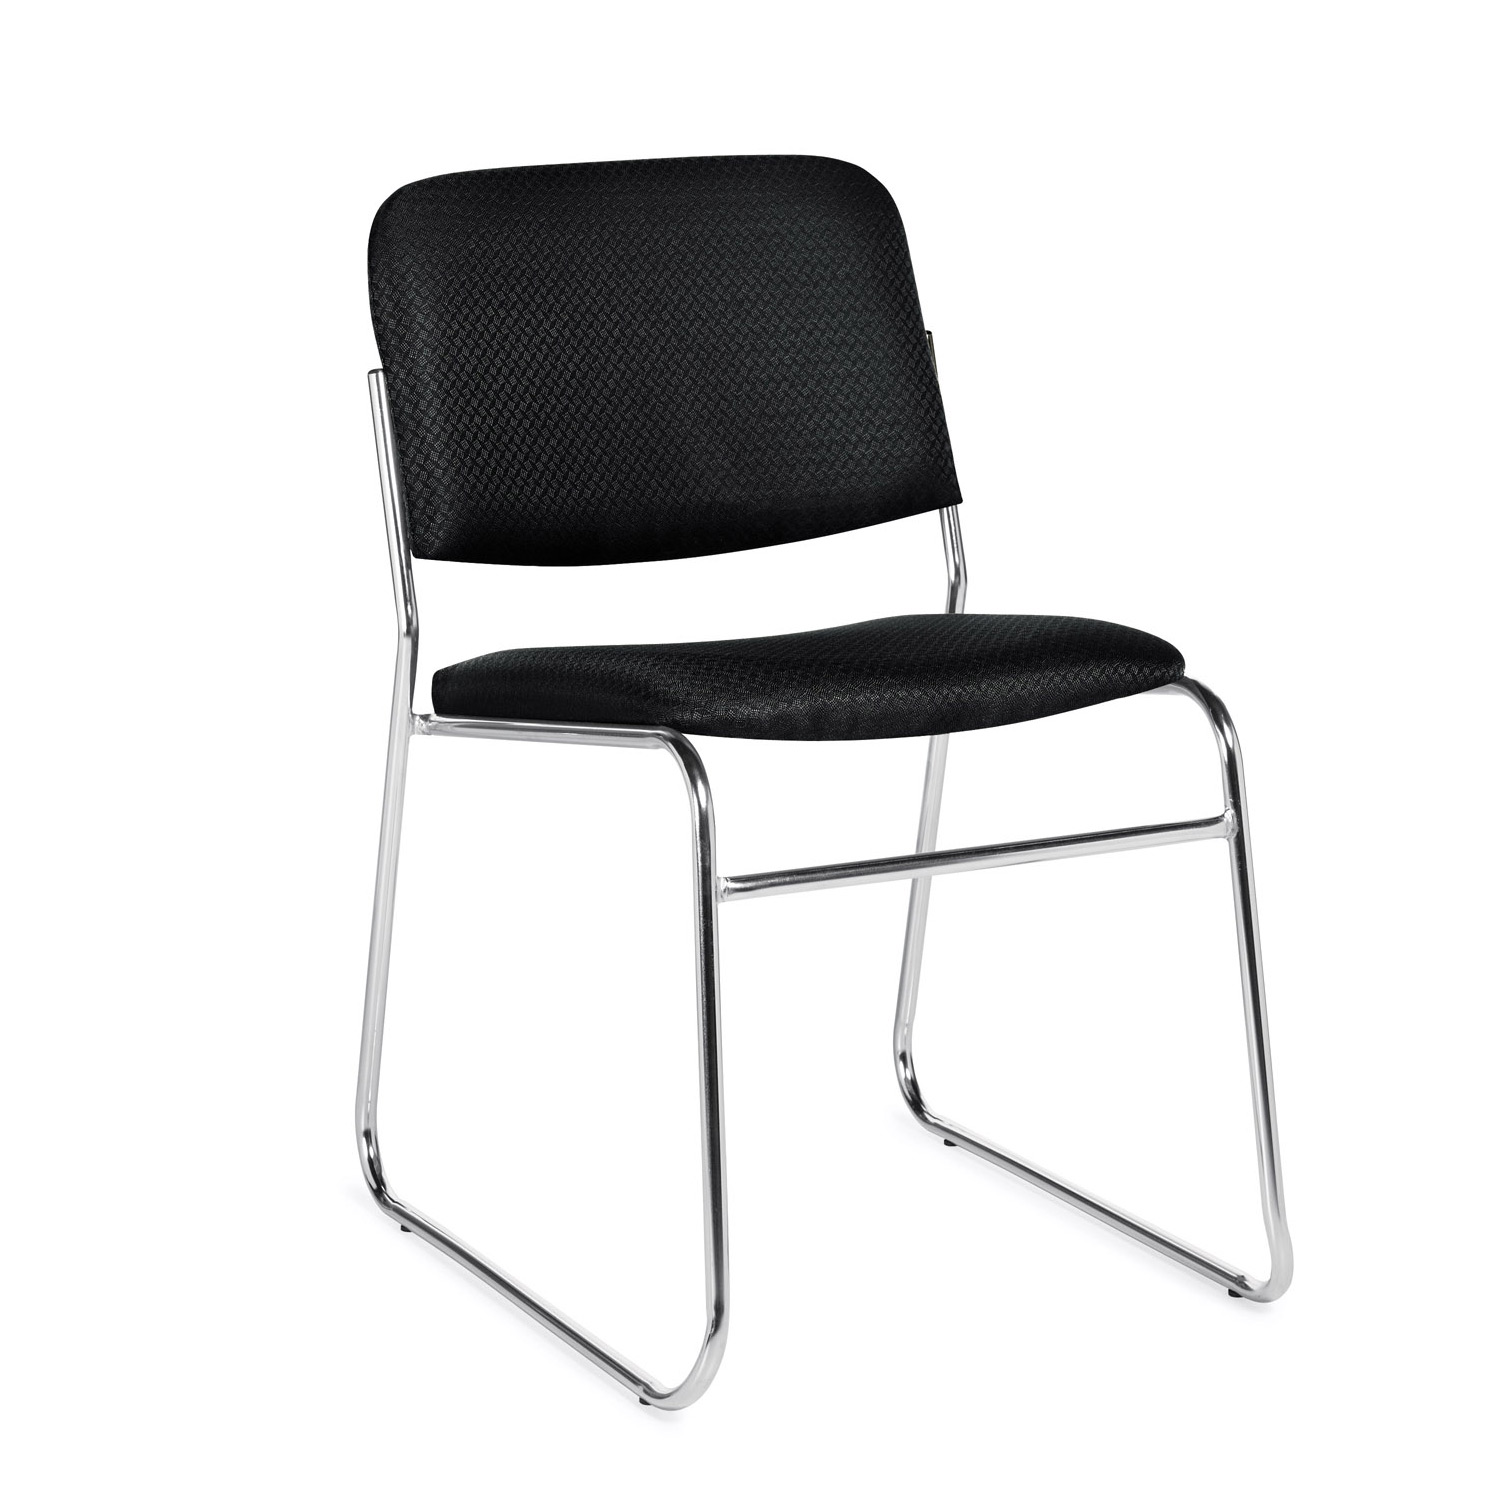 Armless Stack Chair #OTG11697